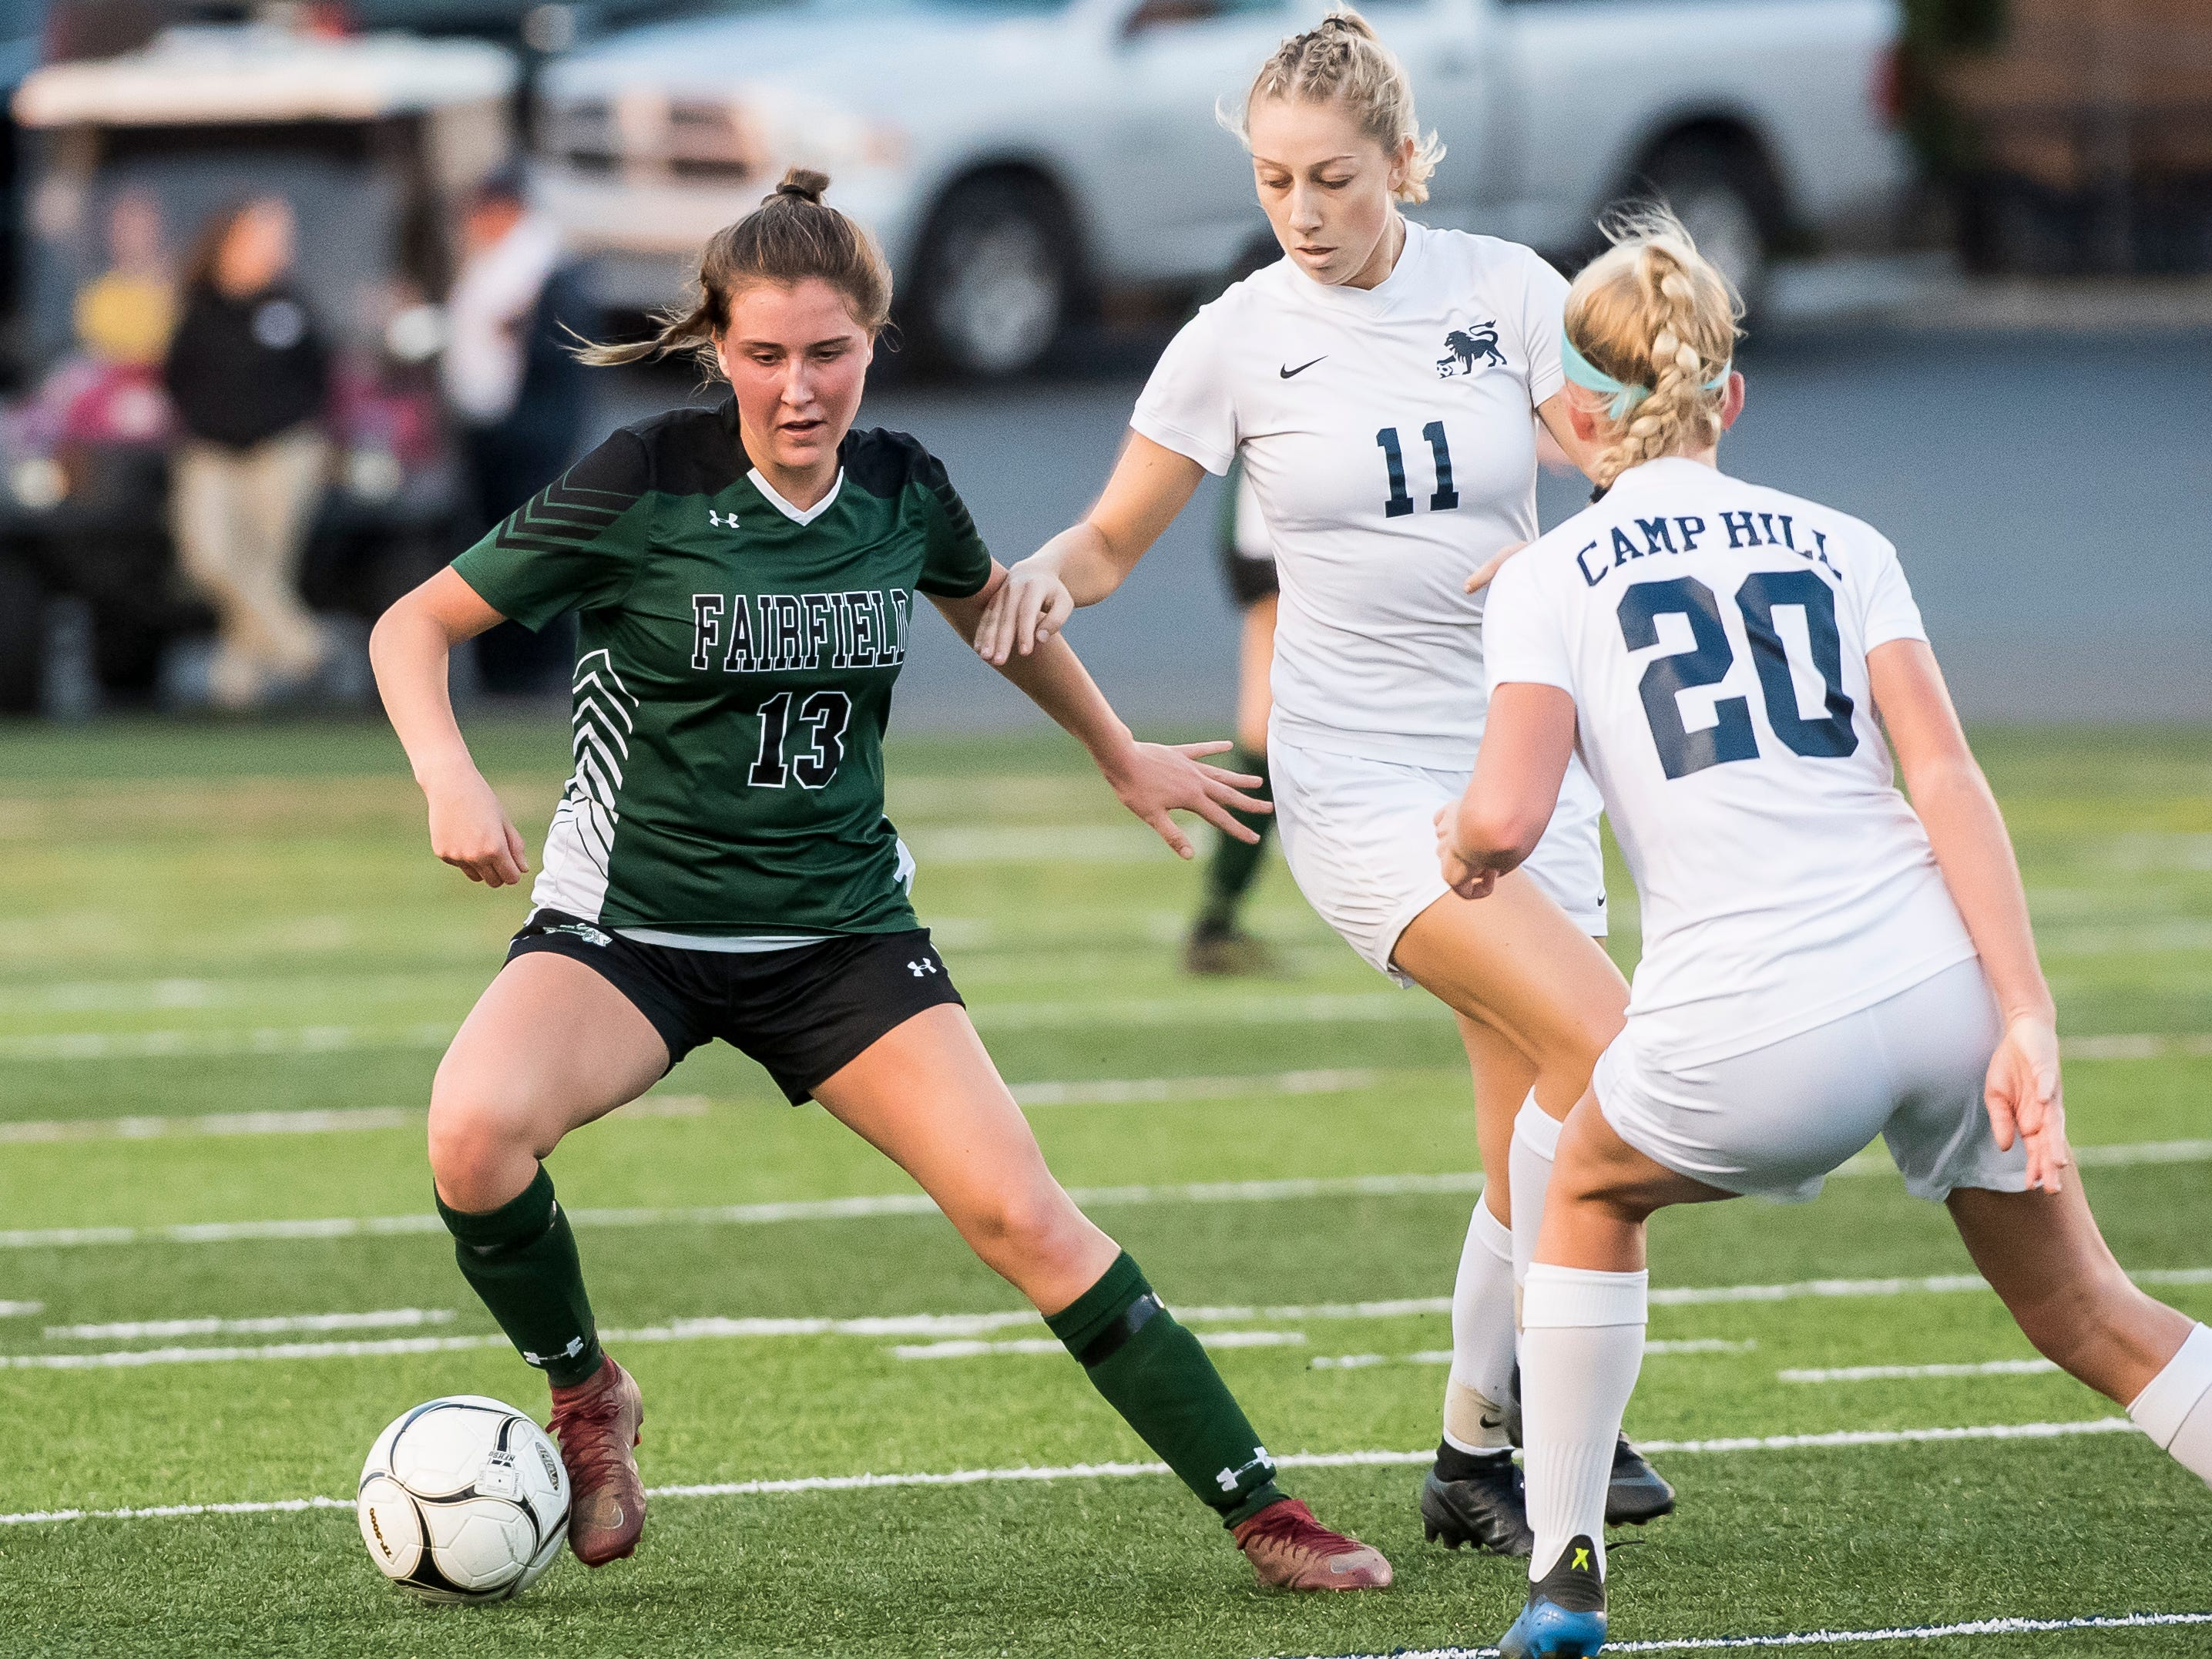 Fairfield's Honey Strosnider works around Camp Hill's Sheridan Reid (11) and Isabella Hoffer (20) during the PIAA District III Class A championship game at Hershey Park Stadium on Wednesday, October 31, 2018. The Knights fell in overtime 1-0.